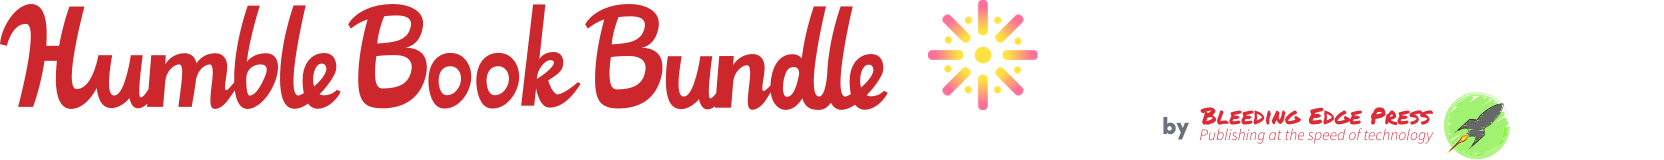 Humble Book Bundle: Open Source Bookshelf by Bleeding Edge Press